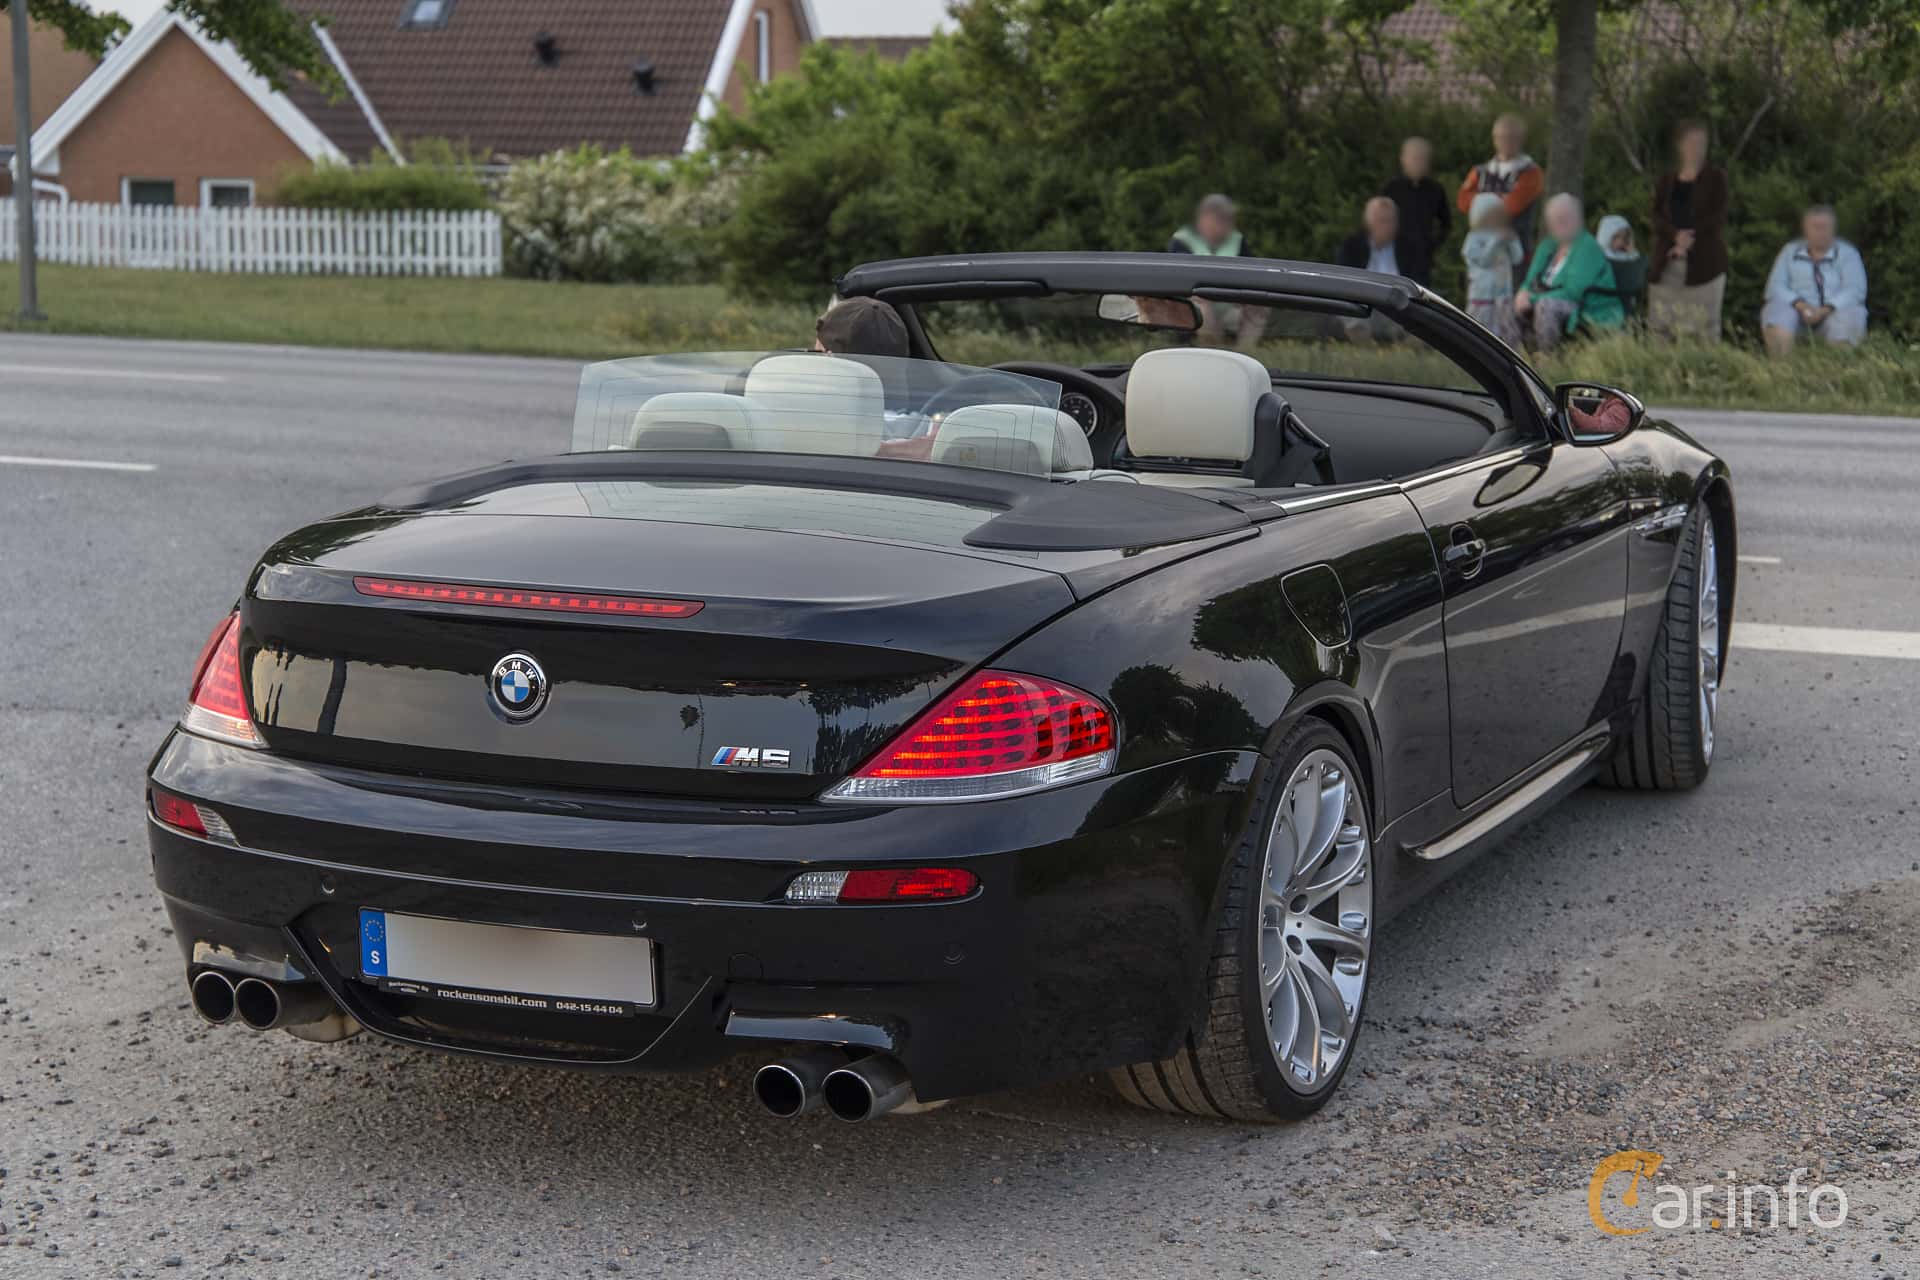 2 Images Of Bmw M6 Convertible 5 0 V10 Automatic 507hp